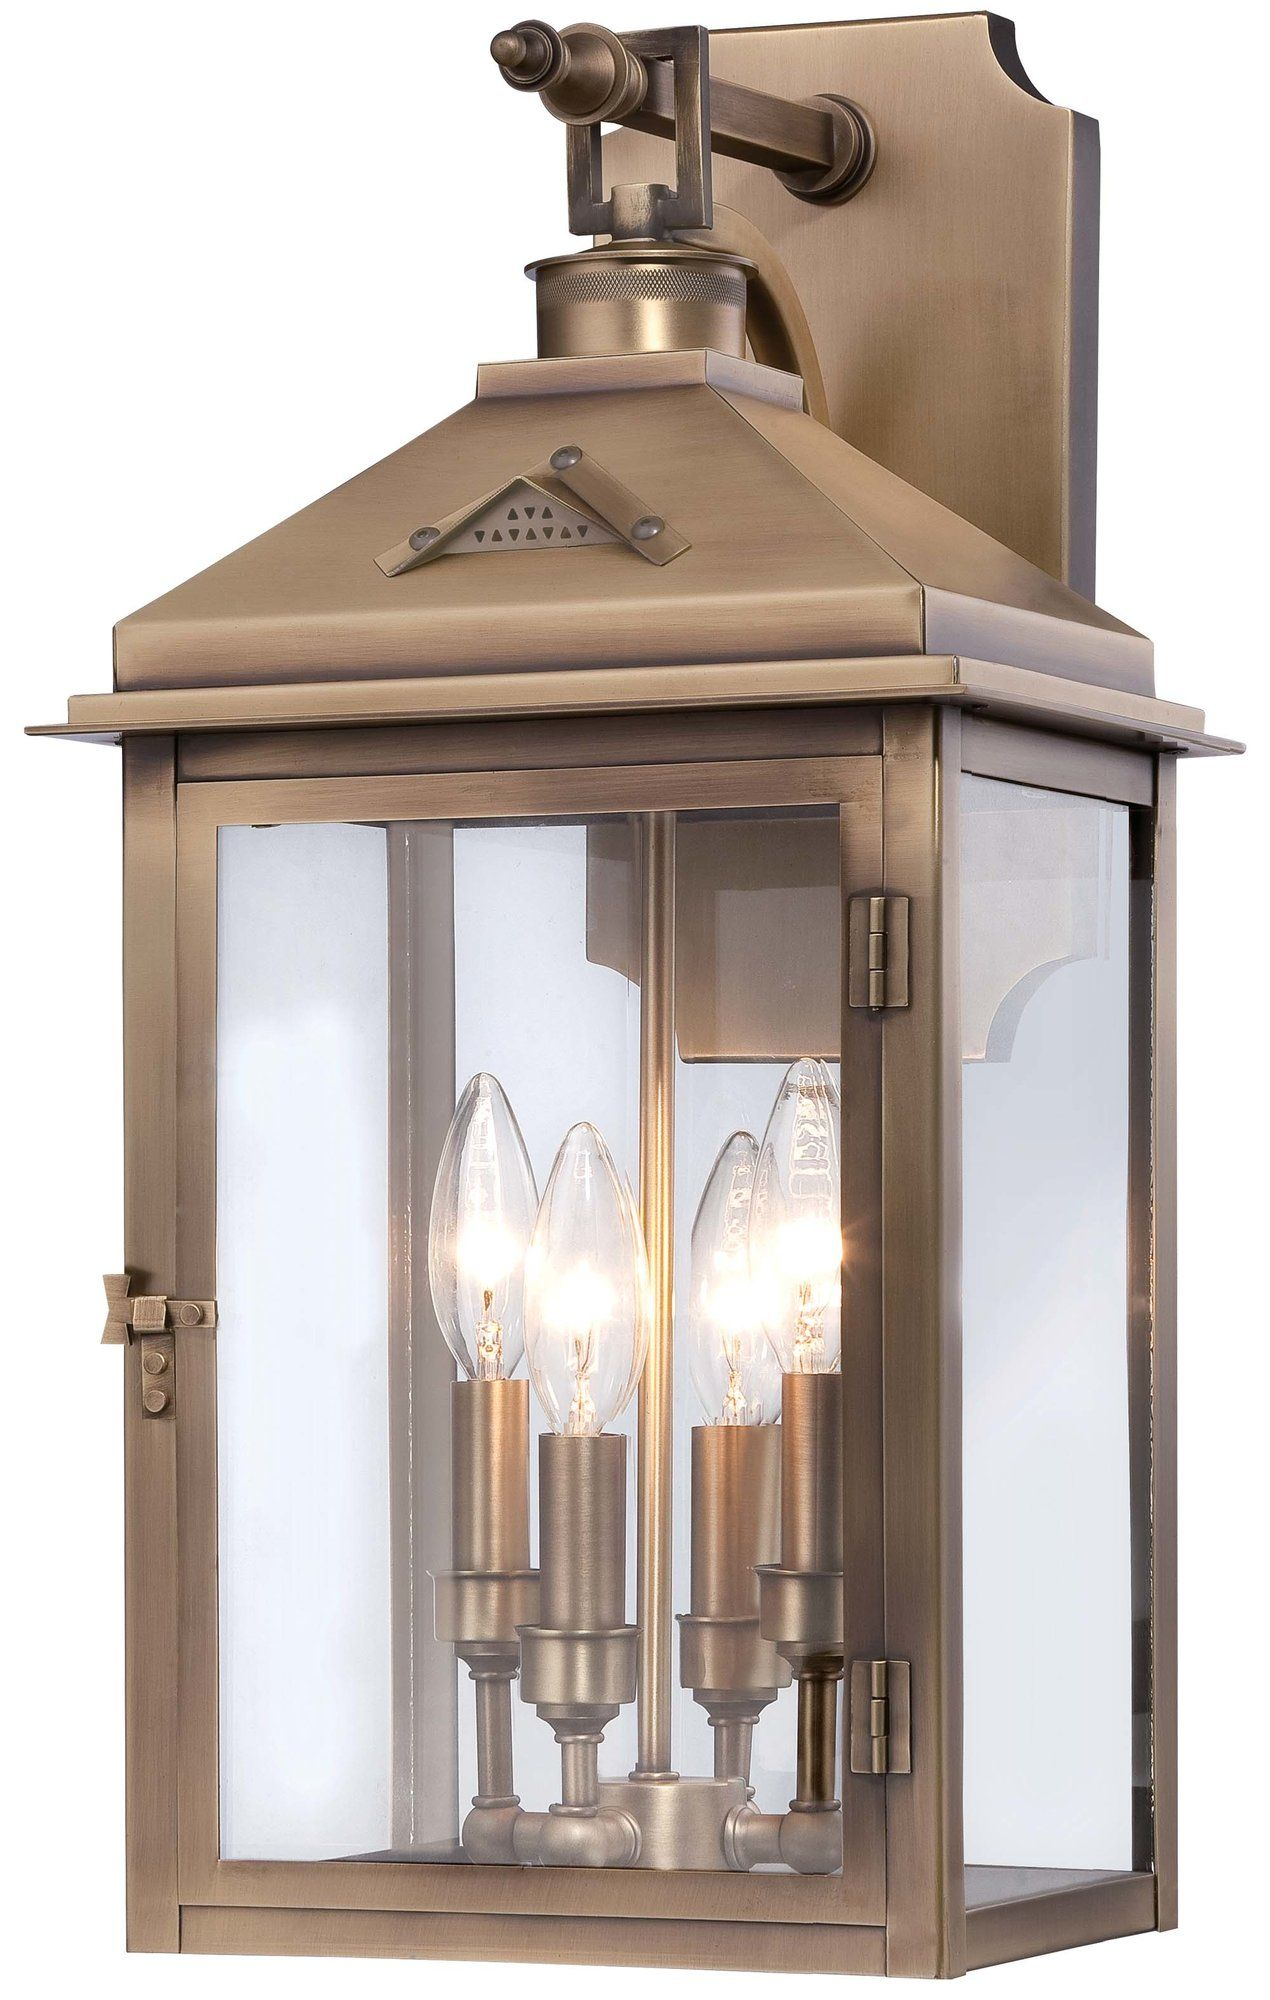 Merton 4 Light Outdoor Wall Lantern With Images Outdoor Wall Lantern Outdoor Wall Sconce Outdoor Walls